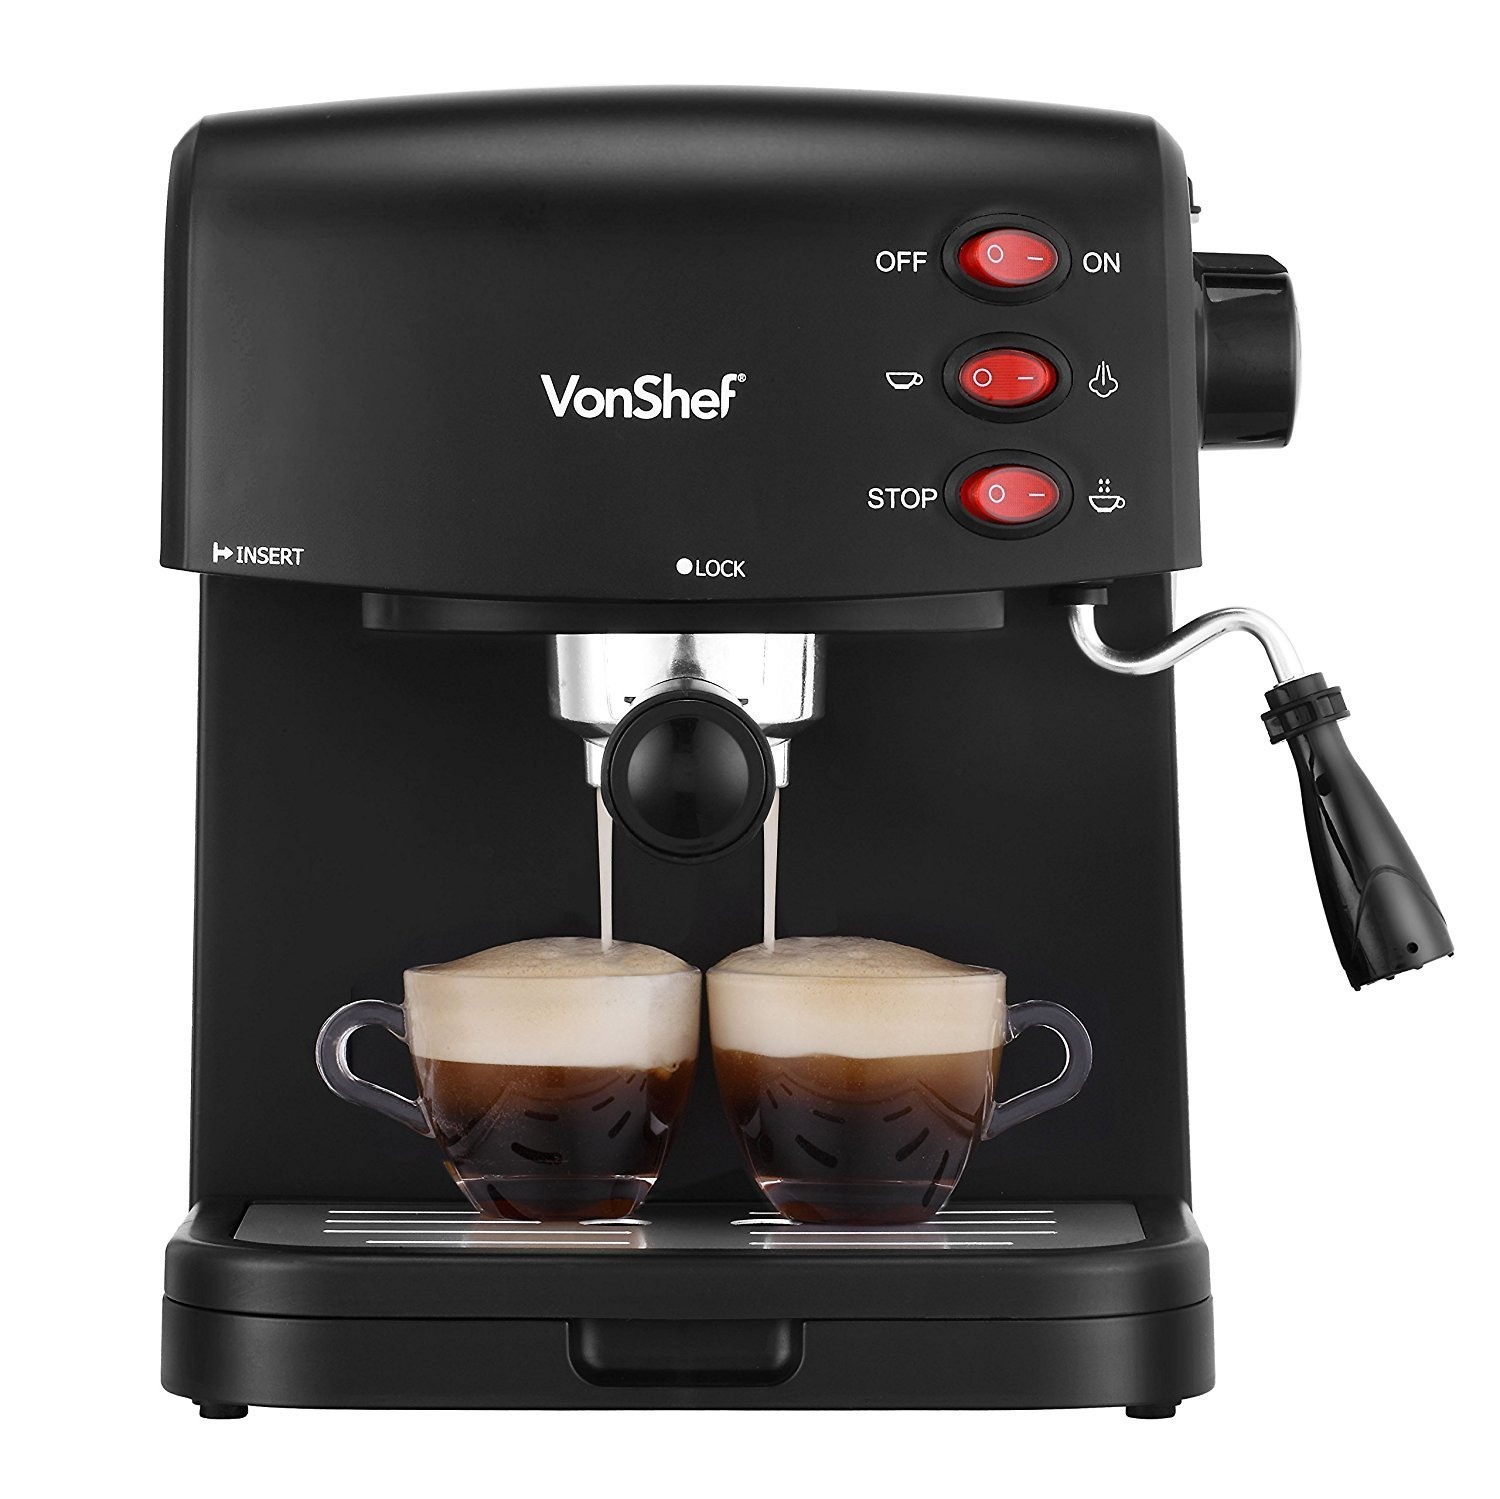 VonShef 15 Bar Pump Espresso Coffee Maker Machine